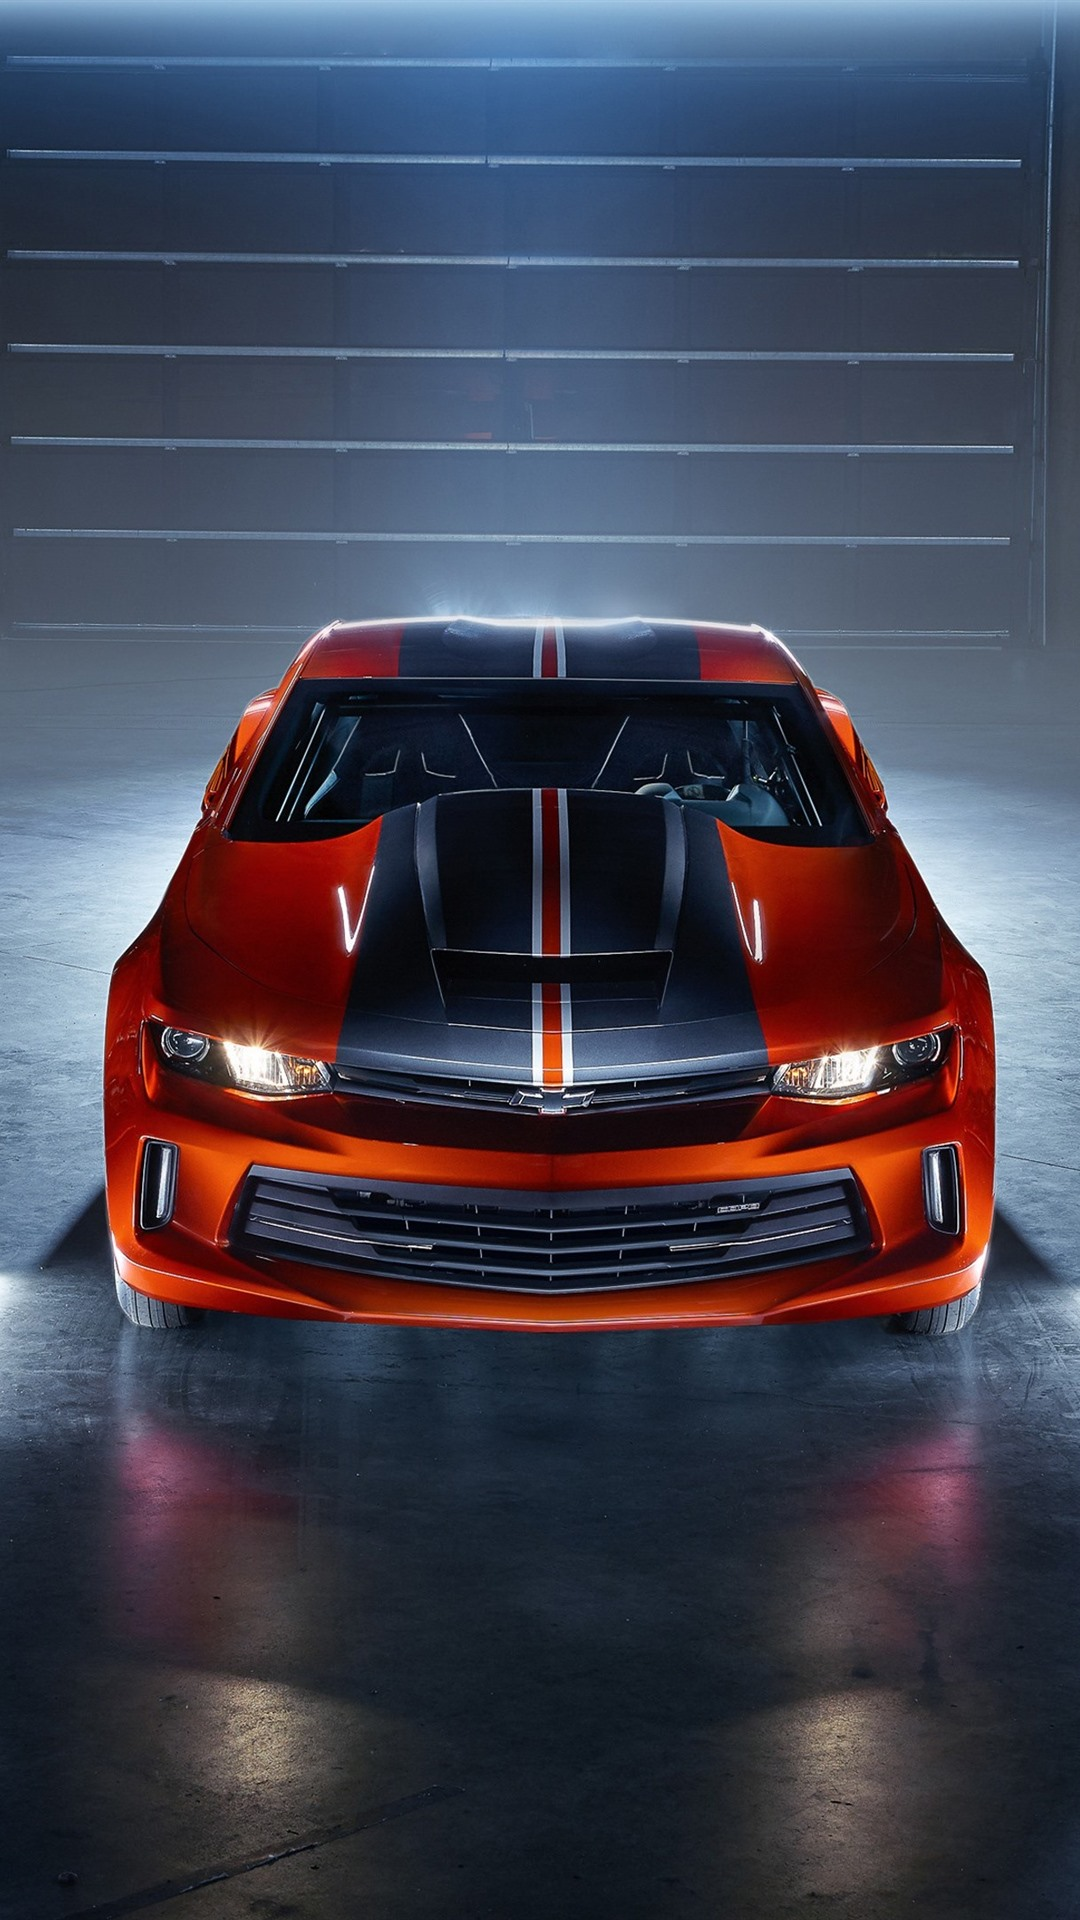 Chevrolet Camaro Cars Front View 1080x1920 Iphone 8 7 6 6s Muscle Car Plus Wallpaper Cityconnectapps